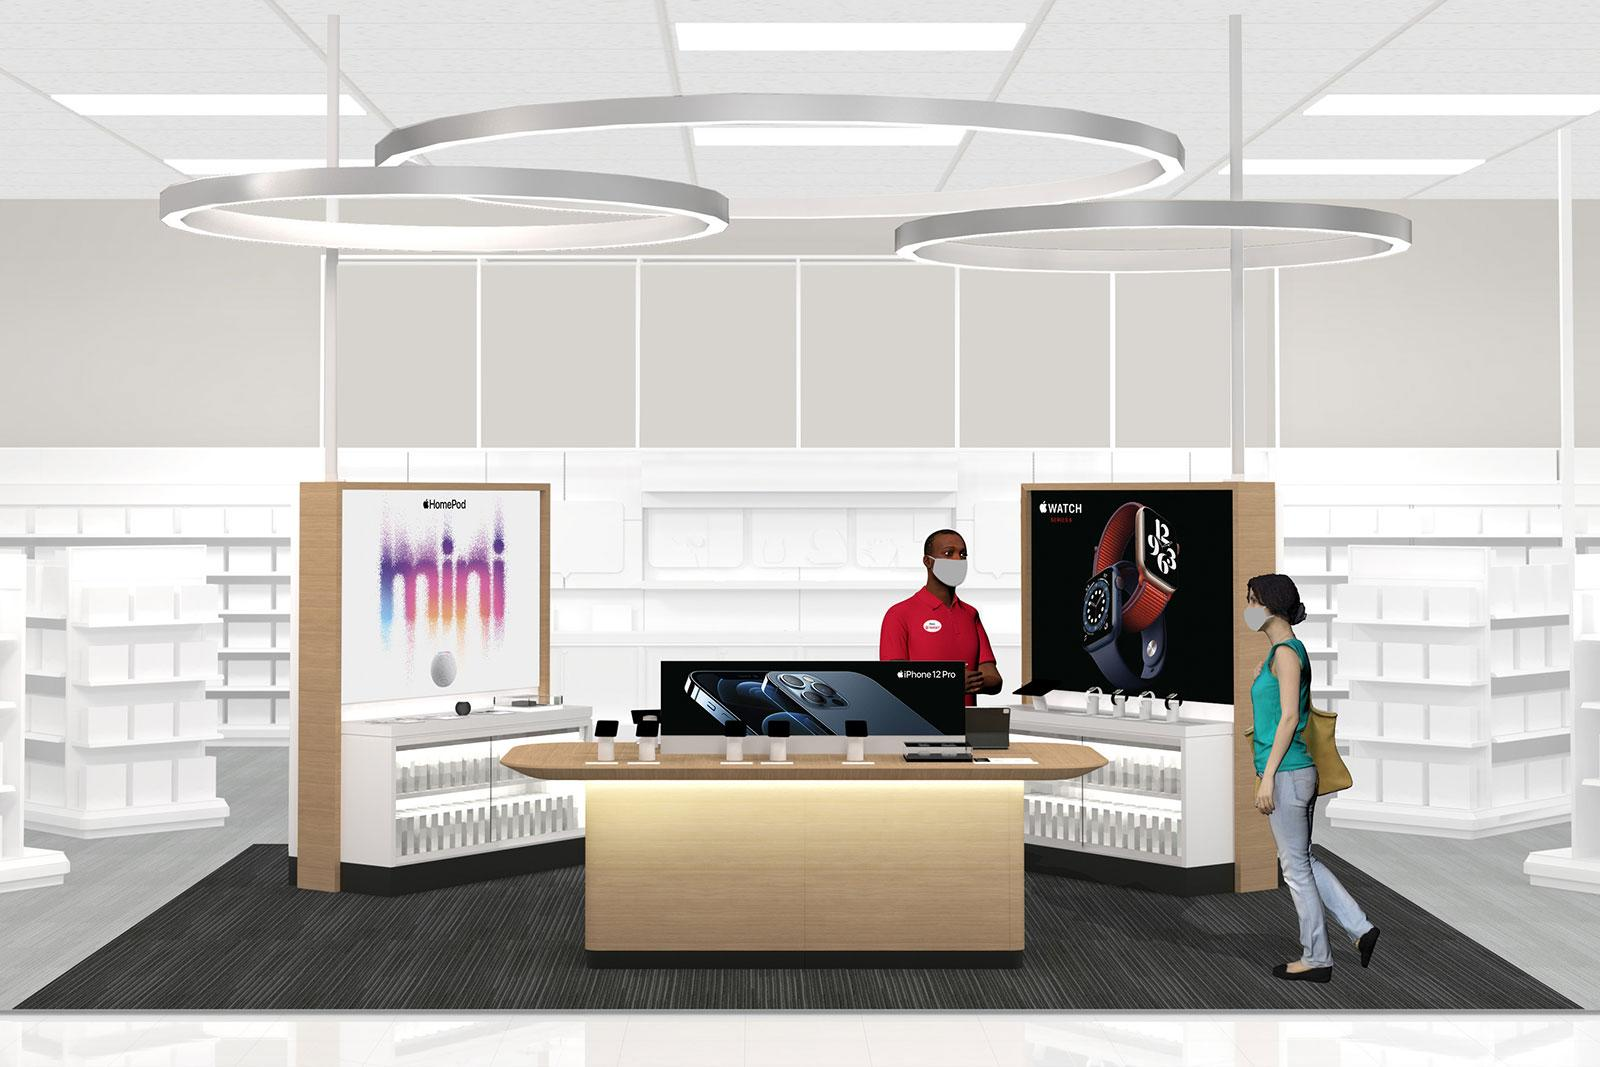 Target will open mini Apple stores to attract post-pandemic shoppers – Engadget